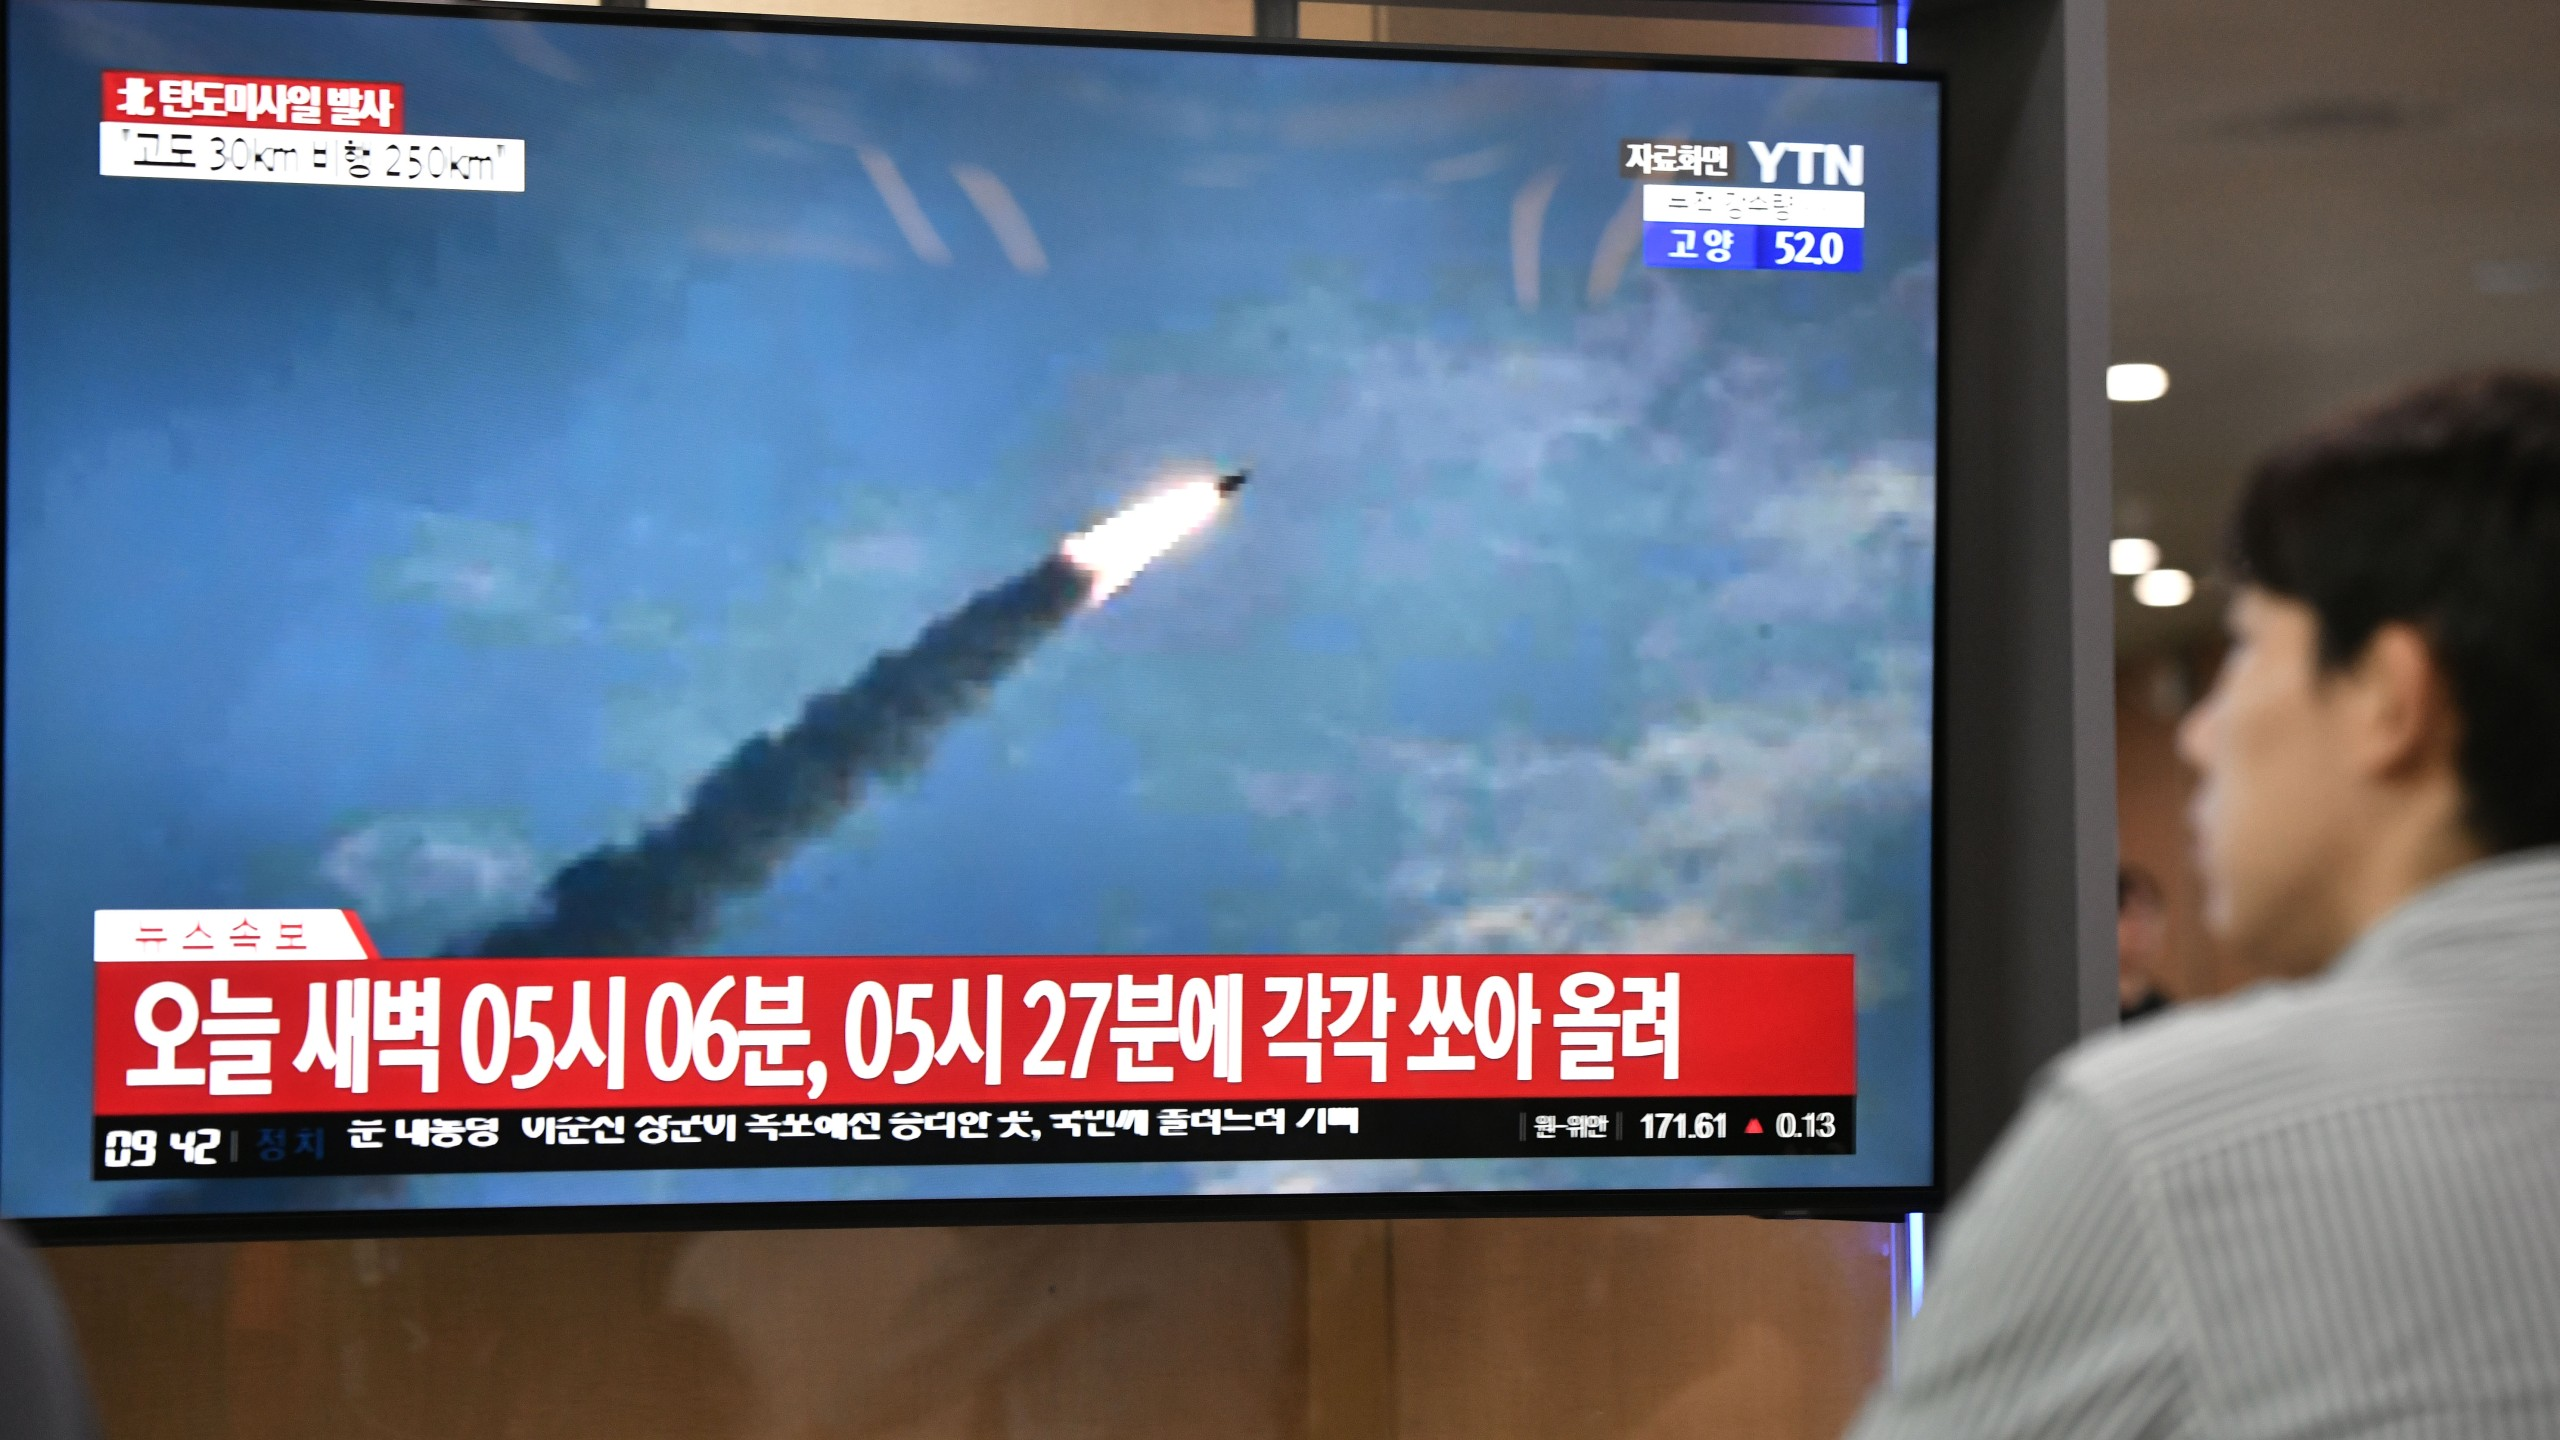 A man watches a television news screen showing file footage of a North Korean missile launch, at a railway station in Seoul on July 31, 2019. - Pyongyang fired two ballistic missiles on July 31, Seoul said, days after a similar launch that the nuclear-armed North described as a warning to the South over planned joint military drills with the United States. (Credit: JUNG YEON-JE/AFP/Getty Images)